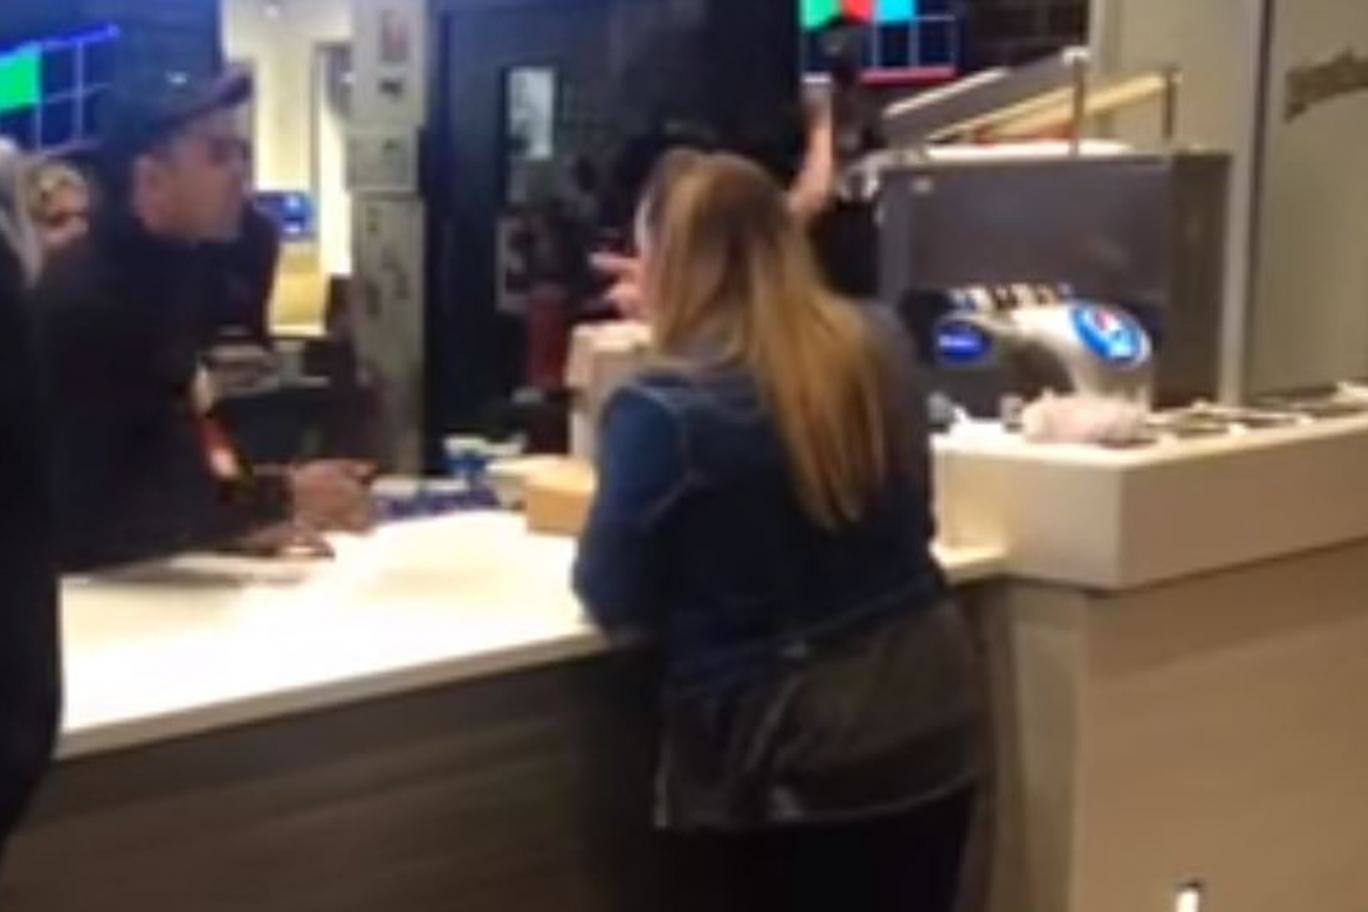 KFC Shocking Video Of Angry Woman Unleashing Racist Rant At KFC Goes Viral